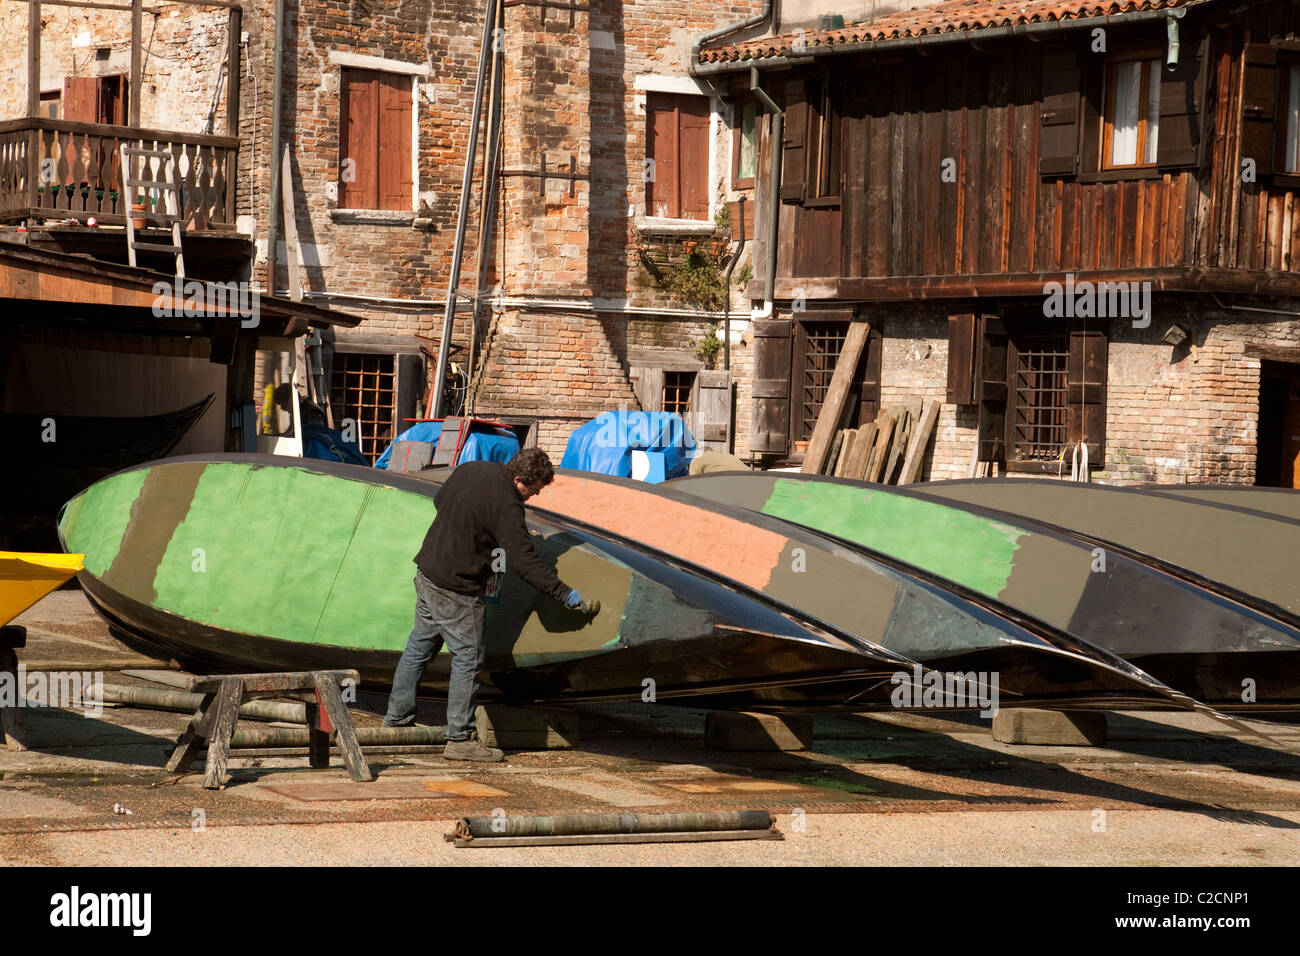 A gondola being repaired in a boatyard, Venice, Italy - Stock Image